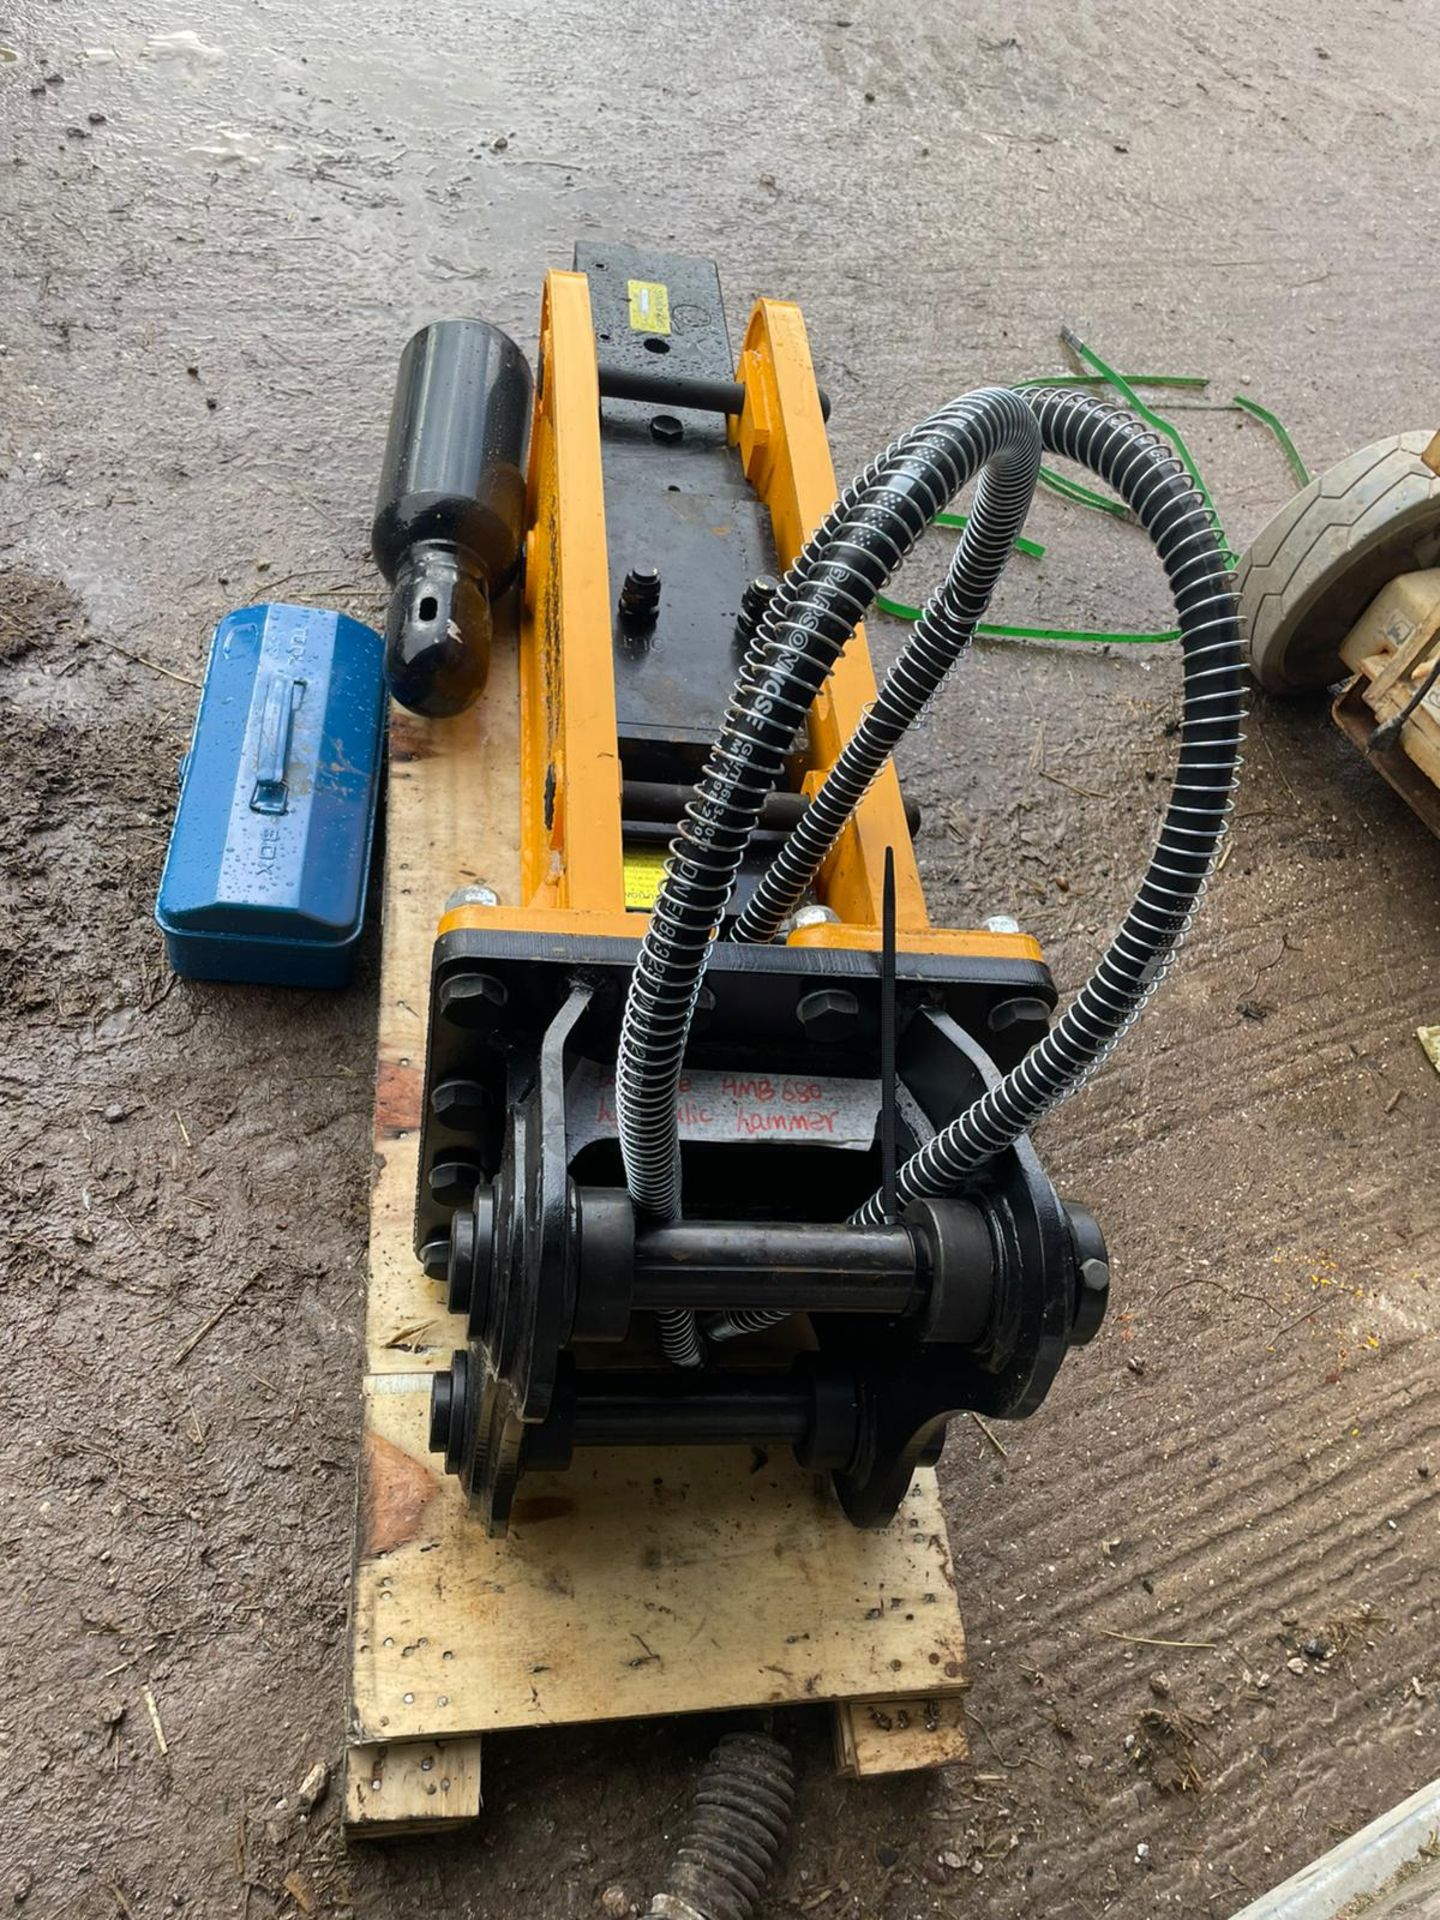 BRAND NEW, UNUSED HANMEN HMB680 BREAKER, SUITABLE FOR 5-8 TON EXCAVATOR, C/W PIPES, CHISEL, GAS KIT - Image 2 of 4